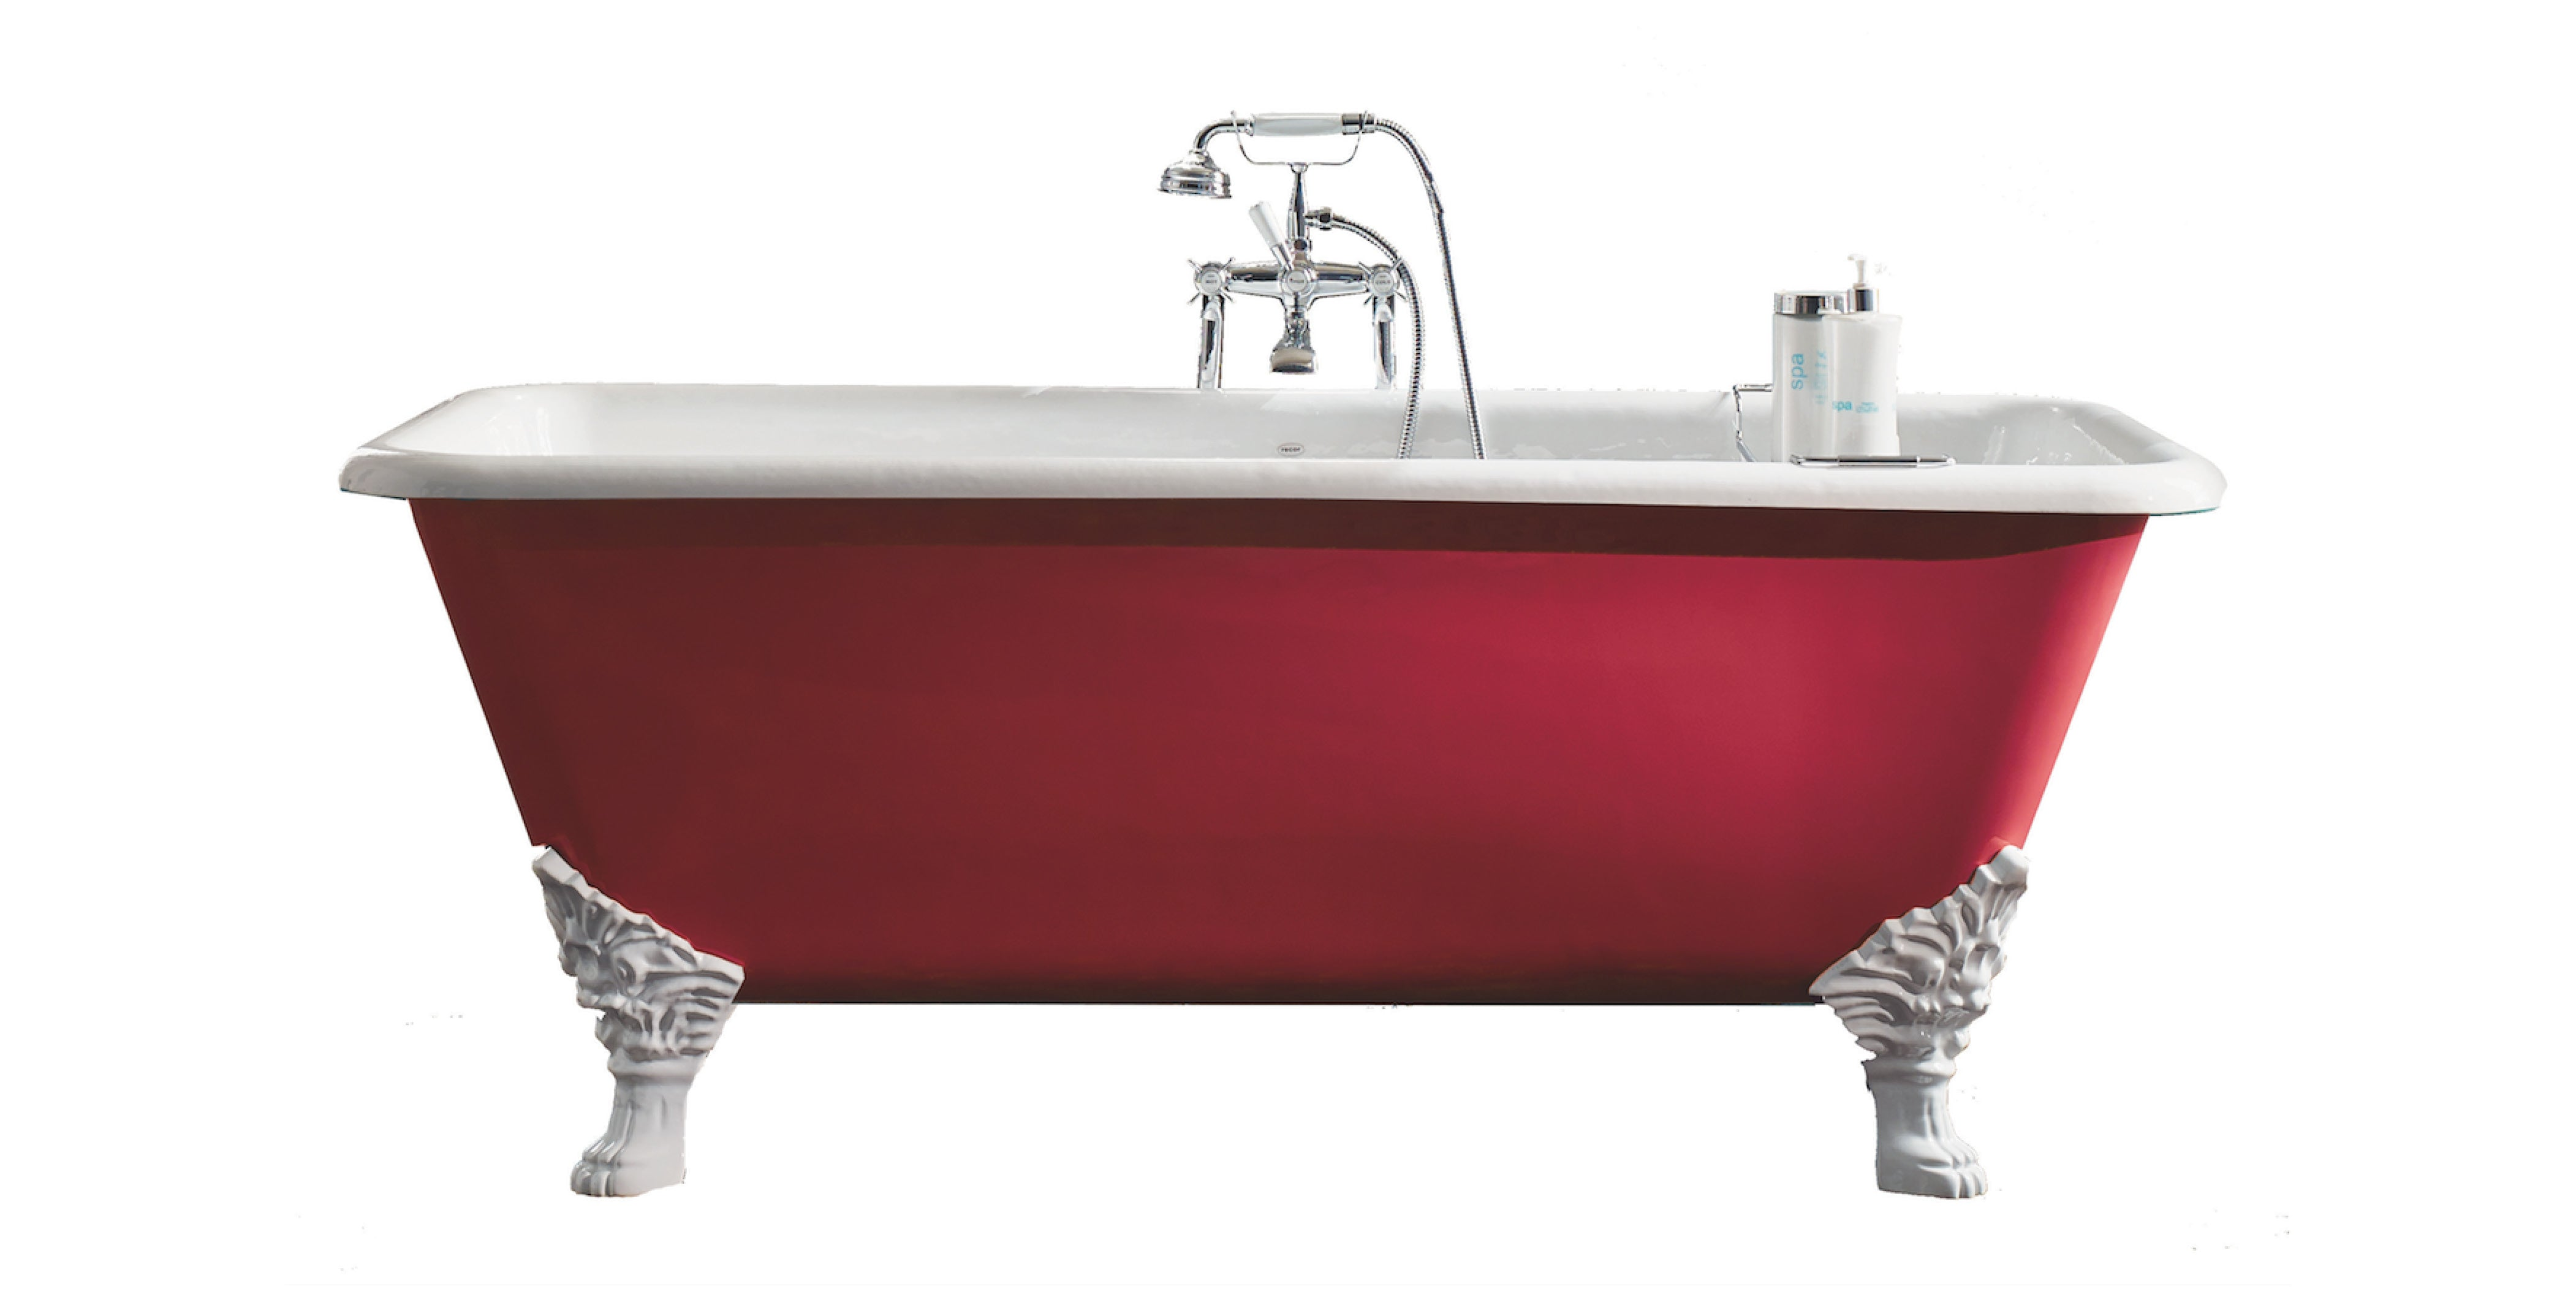 astonian hanover cast iron roll top bathtub with ornate claw feet from aston matthews